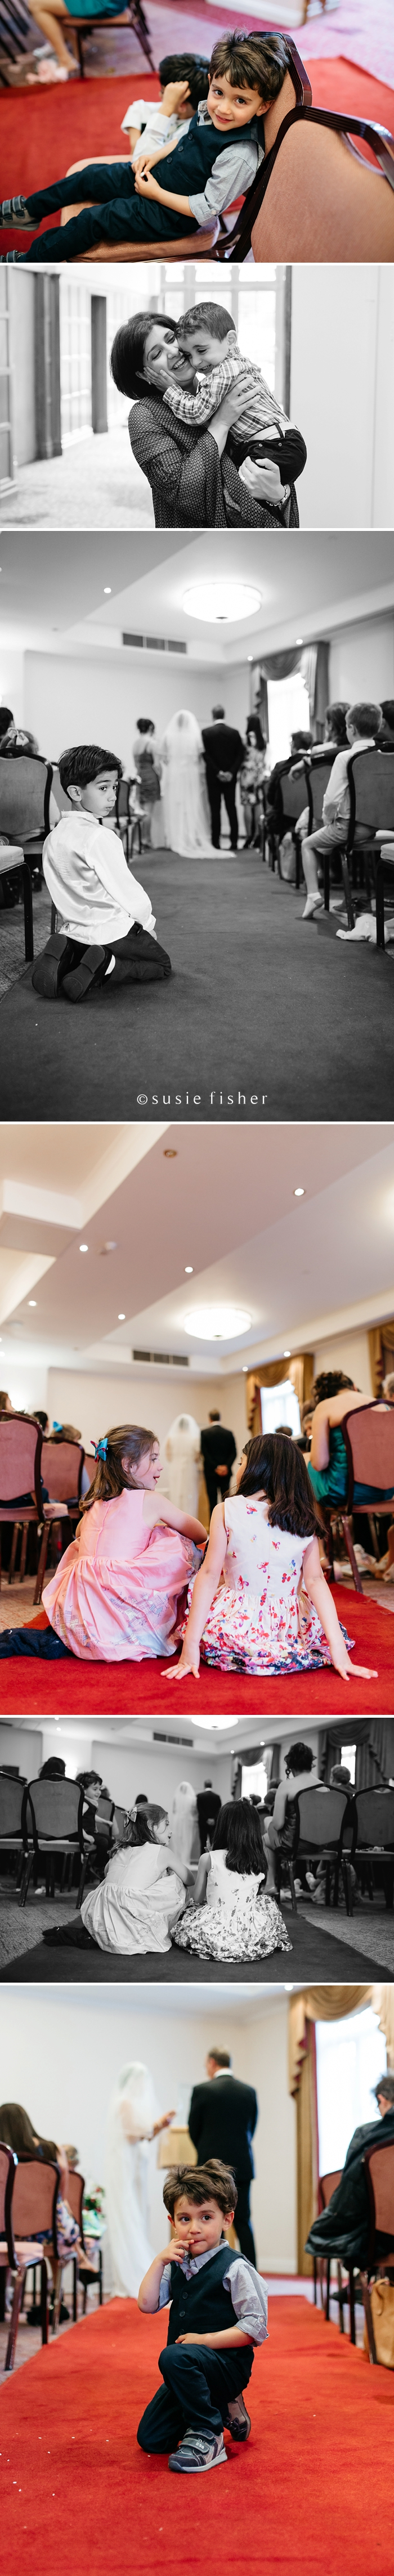 Kingston Upon Thames Wedding Photographer_Copyright Susie Fisher.jpg